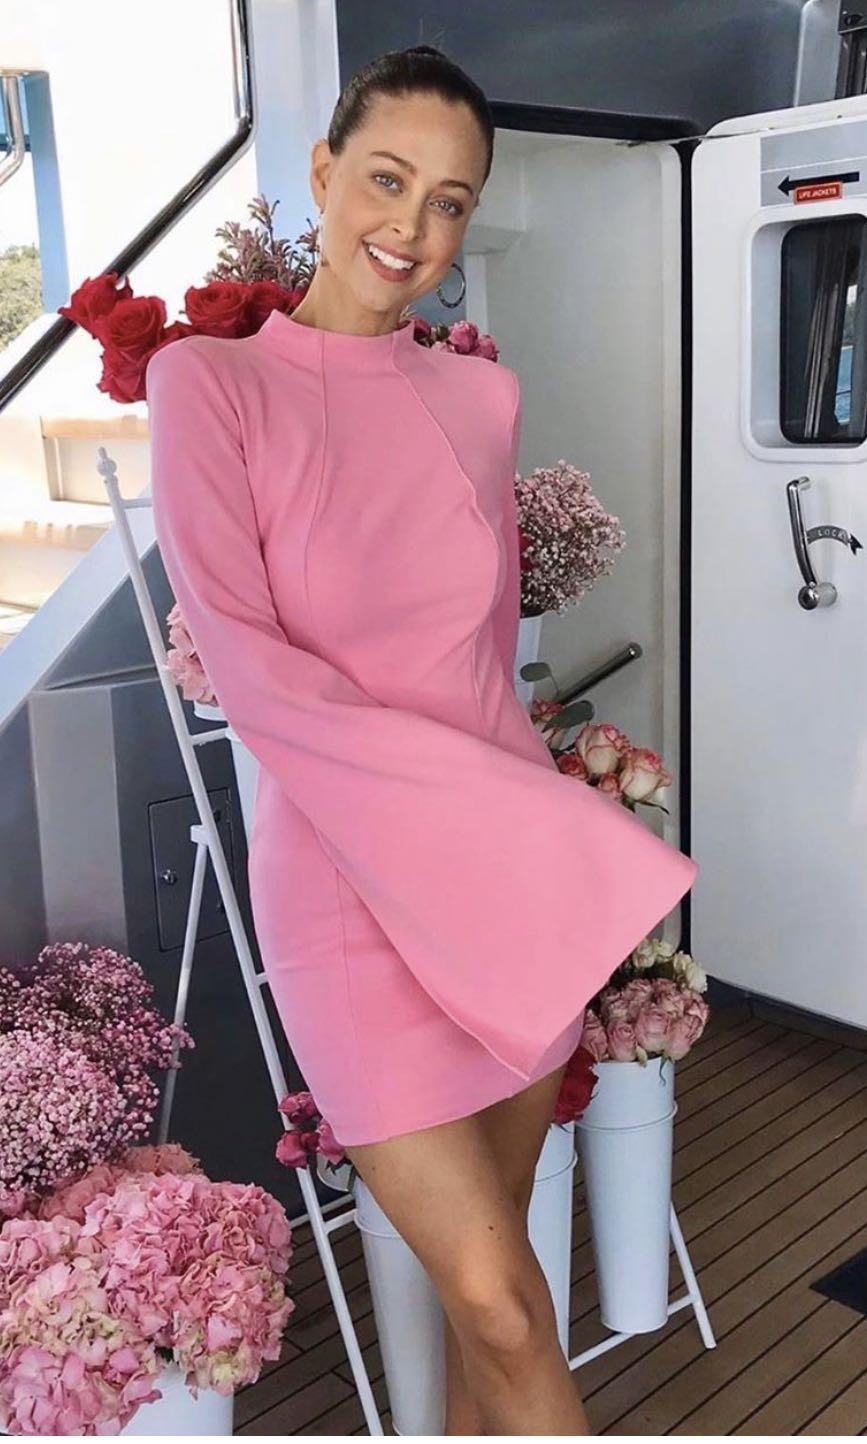 Mossman Sense of mystery dress in pink - size 8 - worn once, perfect condition - rrp $160